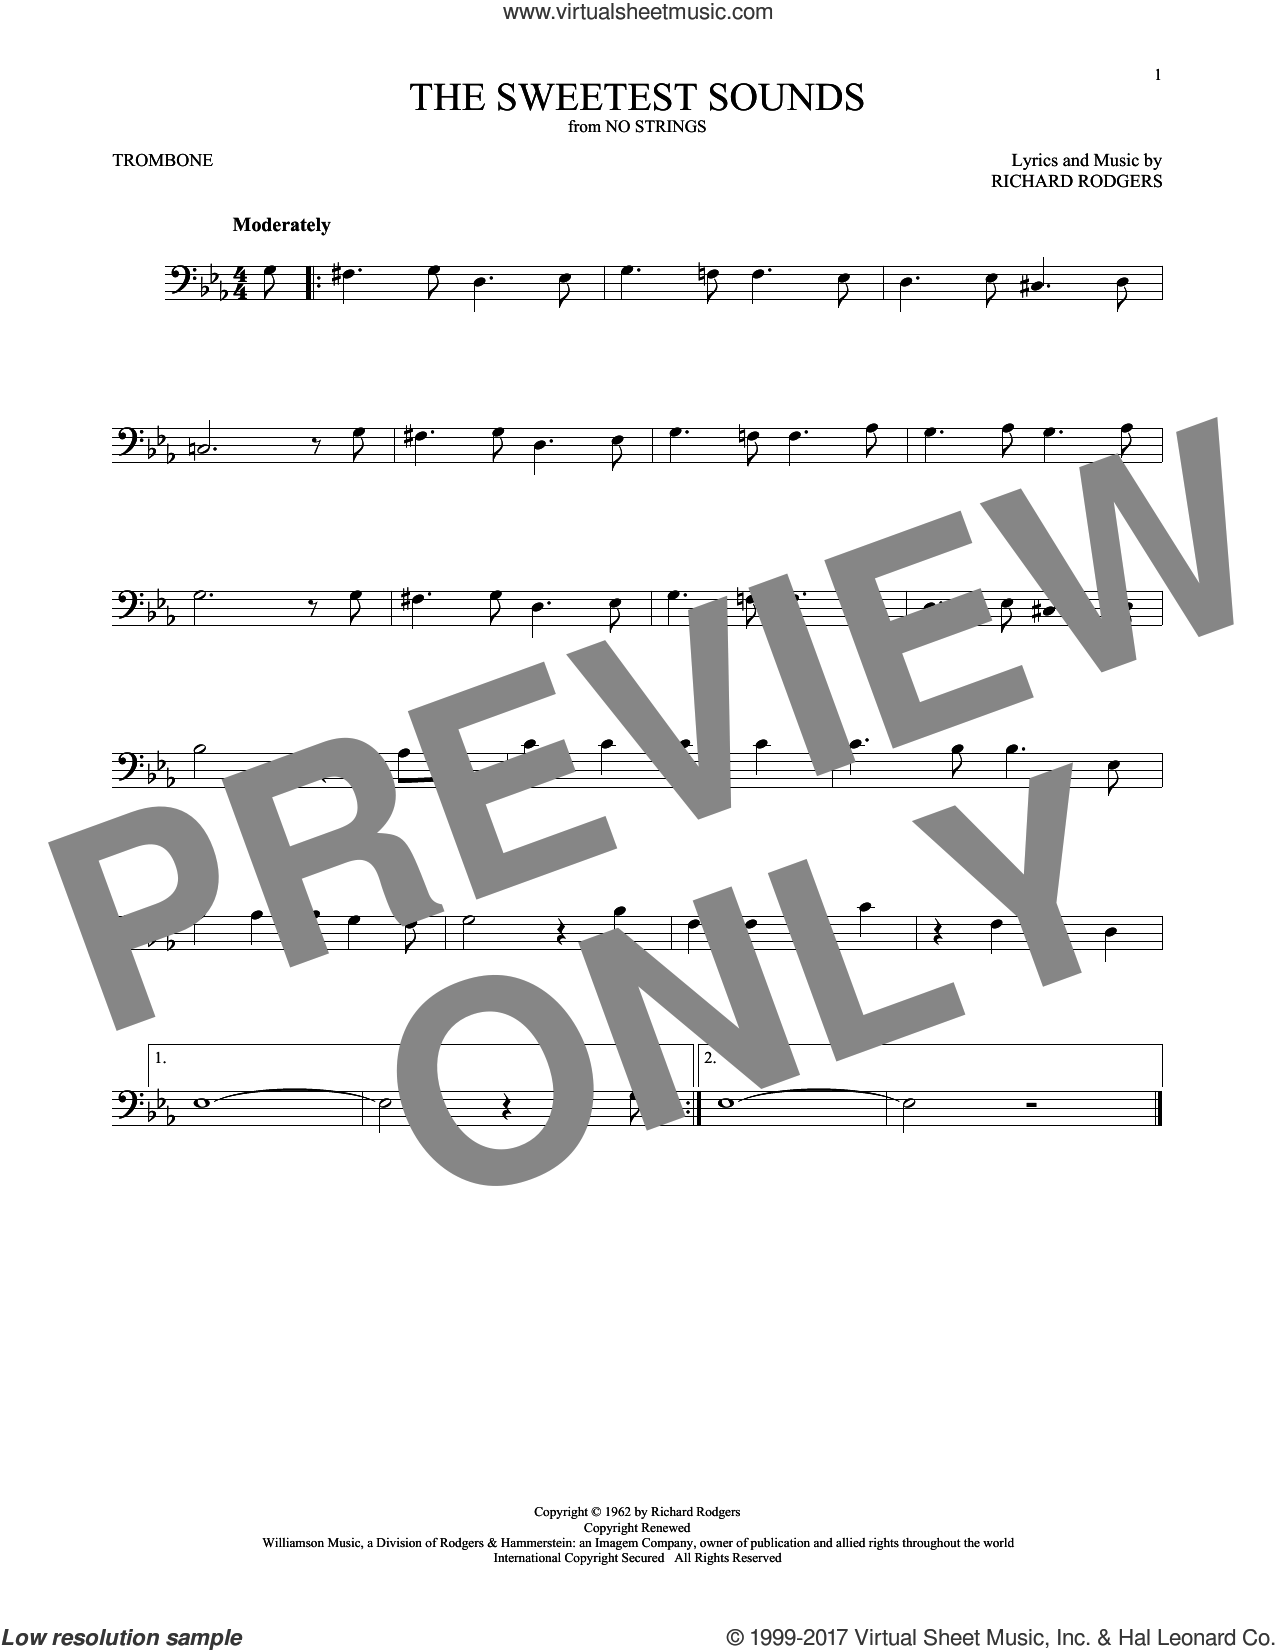 The Sweetest Sounds sheet music for trombone solo by Richard Rodgers, intermediate skill level